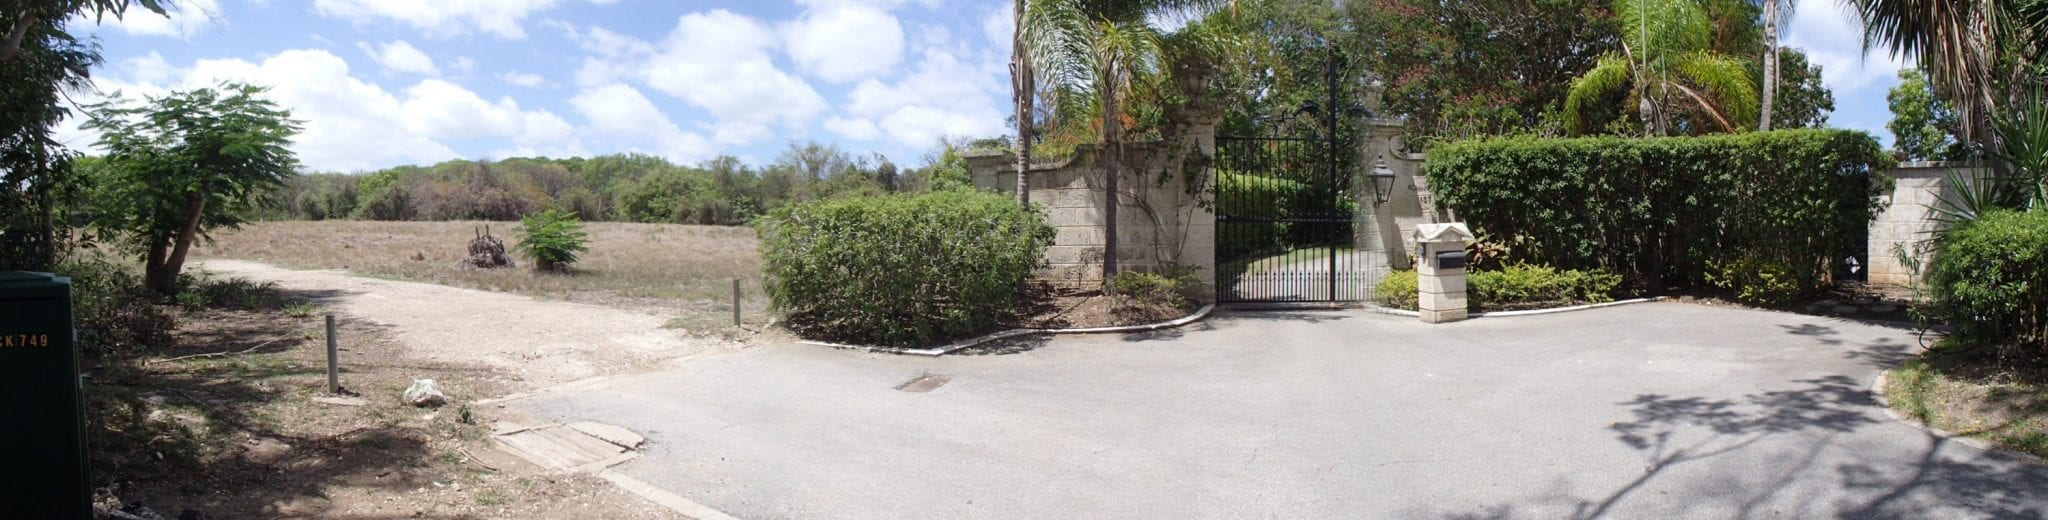 Barbados Experiences - Lost - End of Road